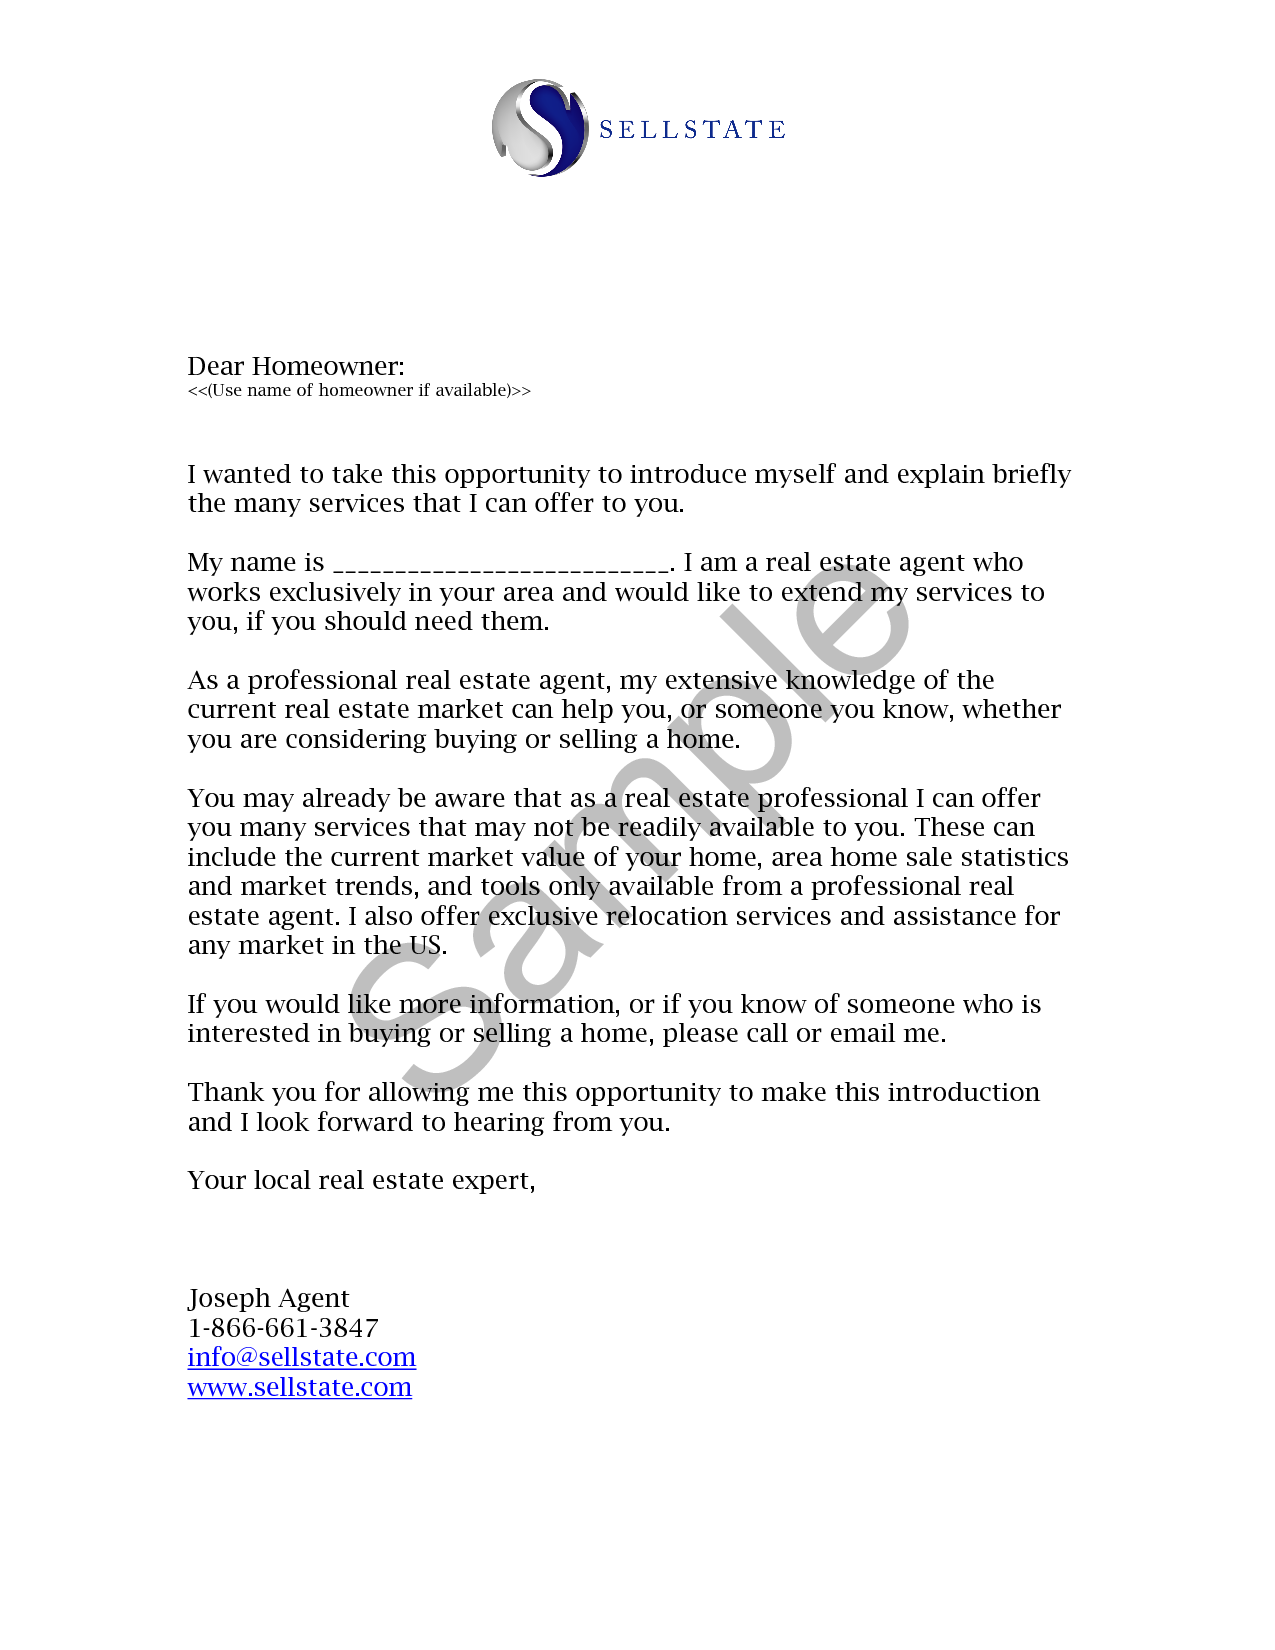 acceptance for value template - real estate letters of introduction introduction letter